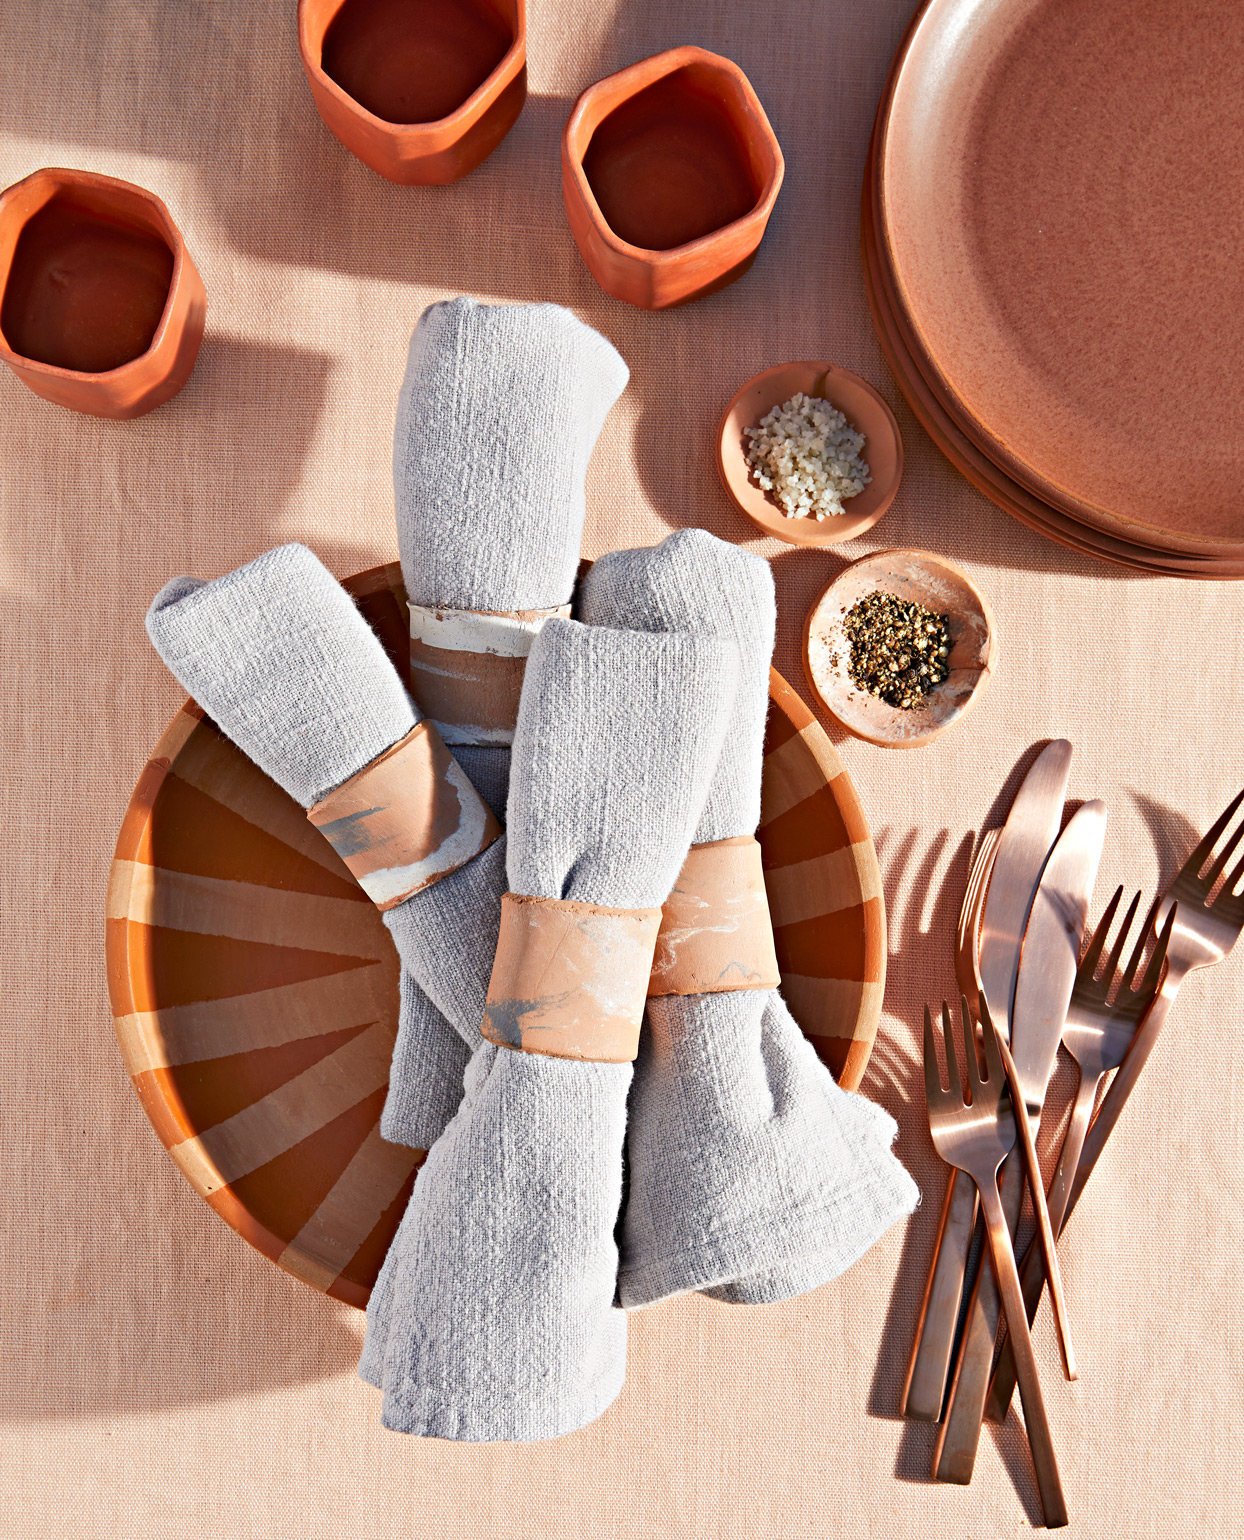 terracotta plates and cups